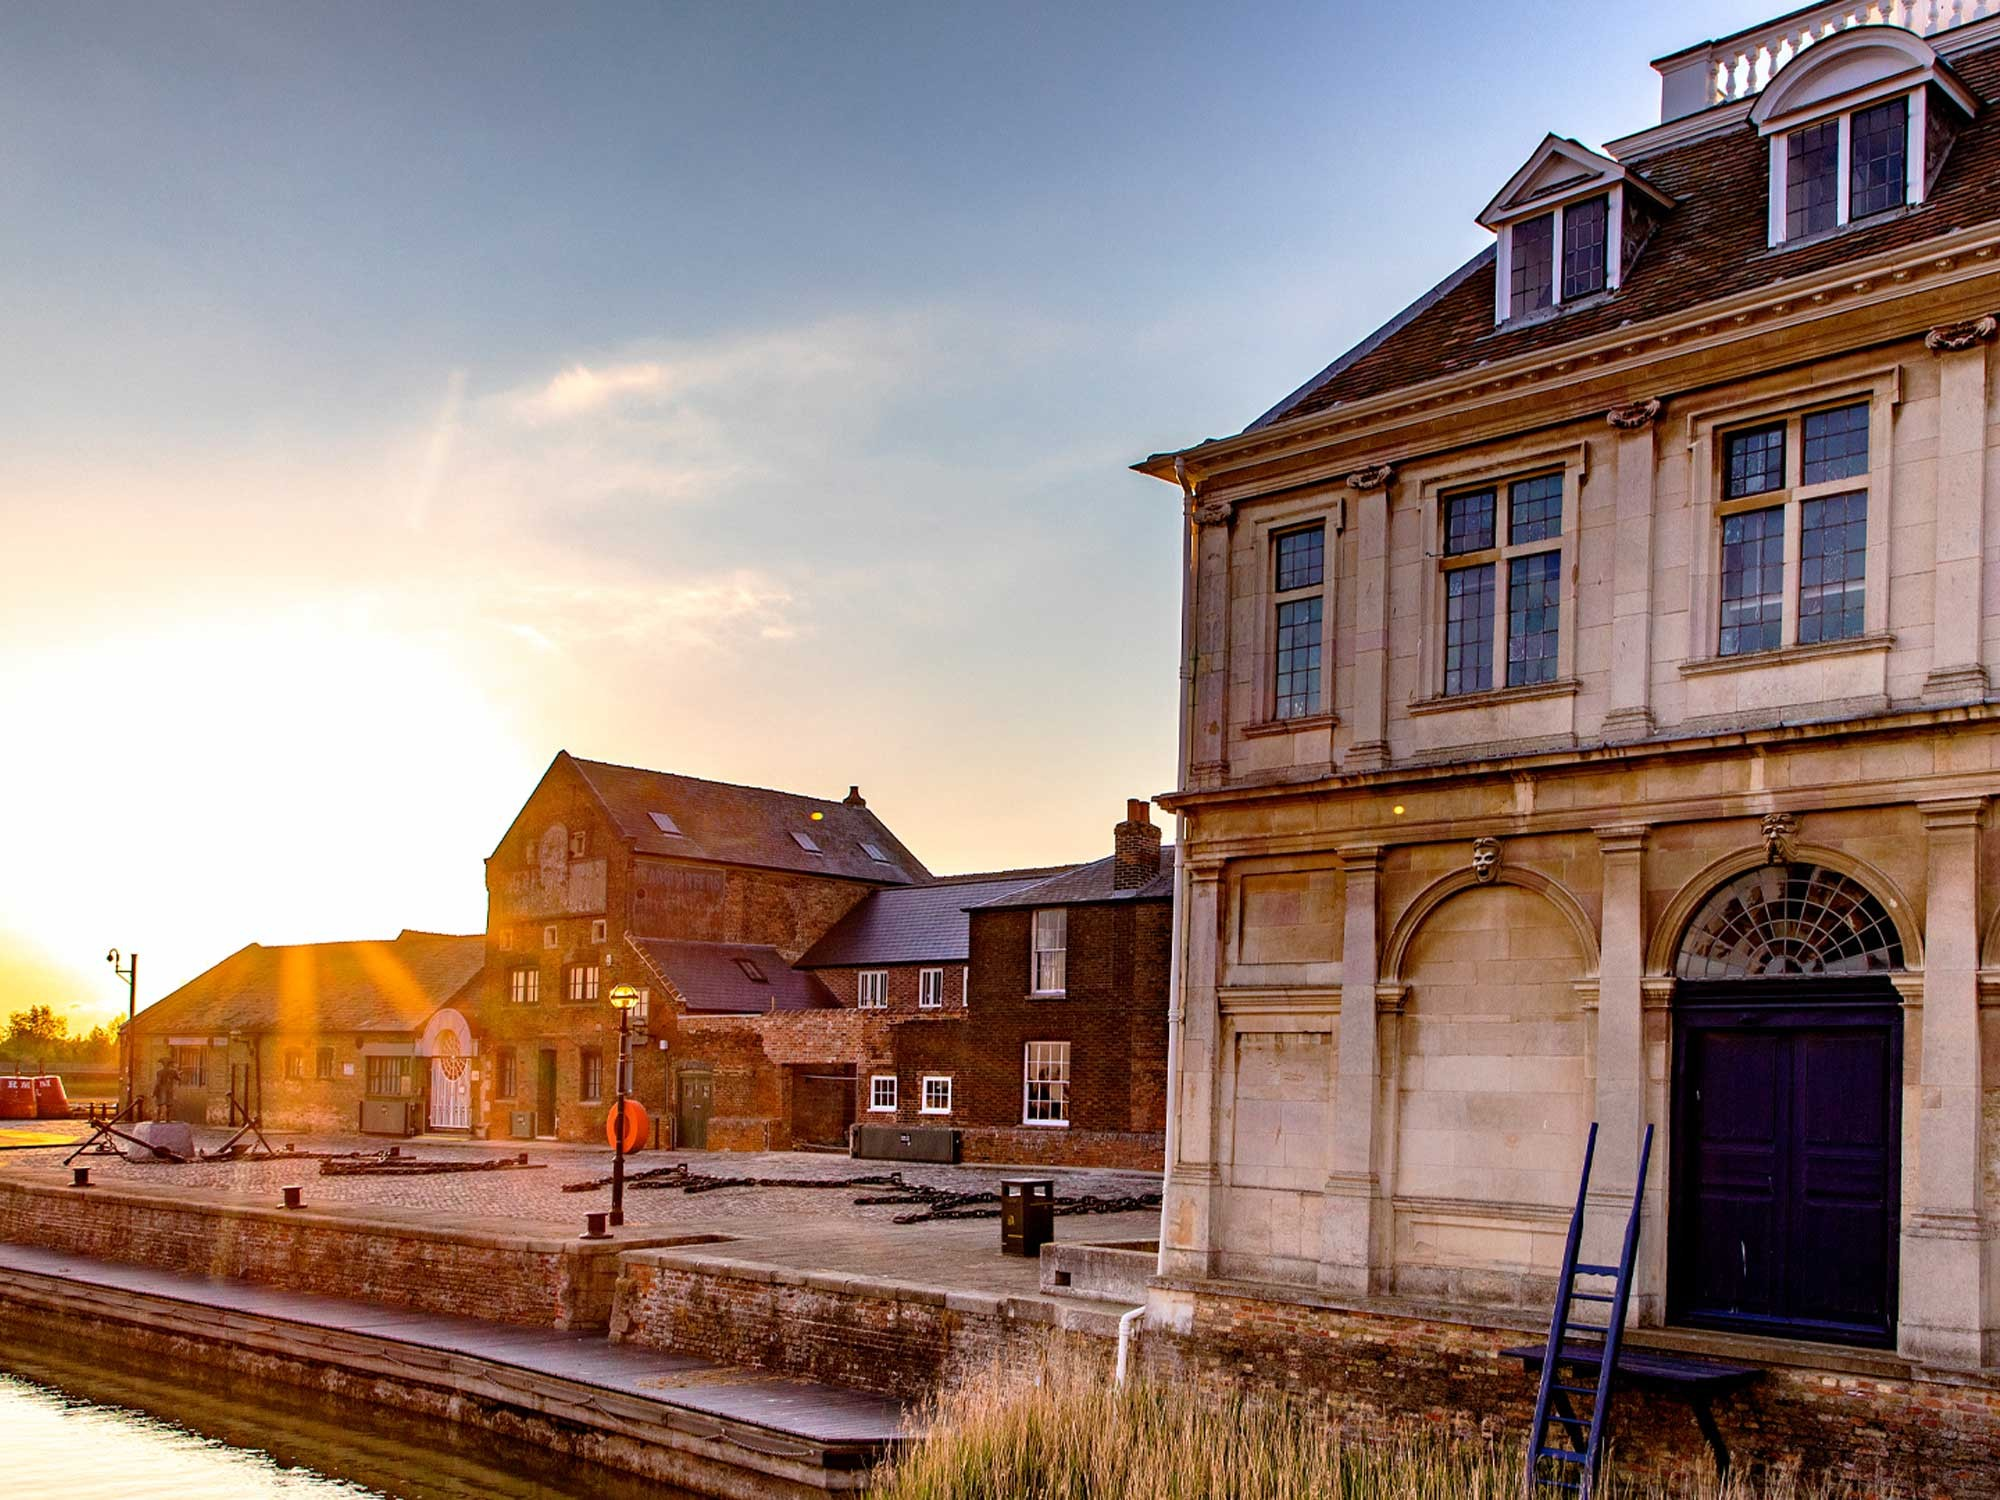 Customs House King's Lynn at Sunset